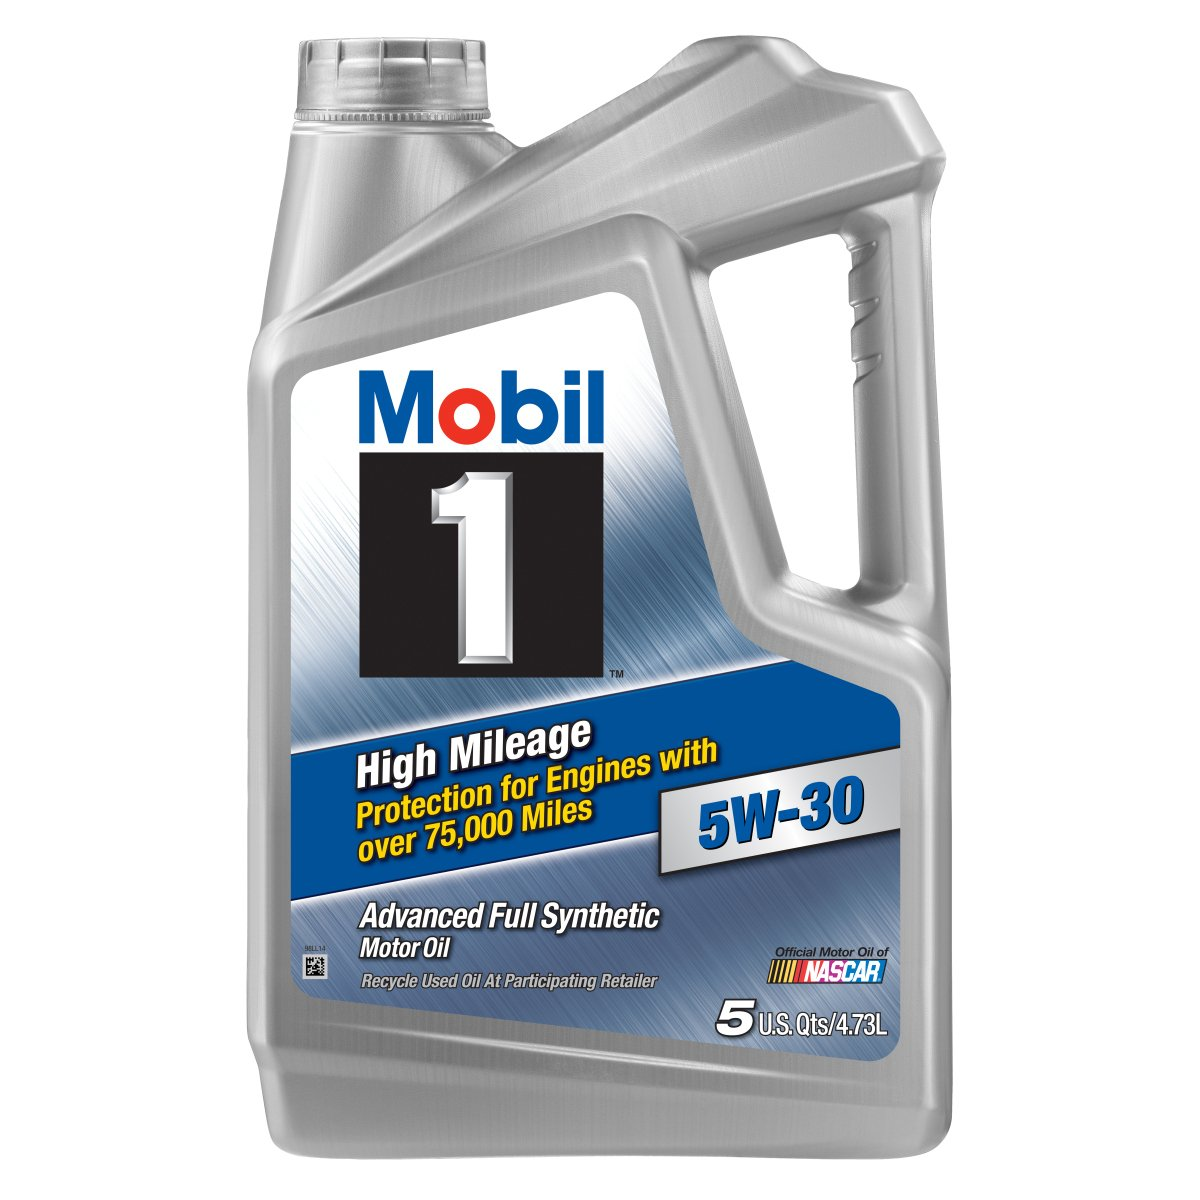 Mobil 1 High Mileage 5W-30 Motor Oil}